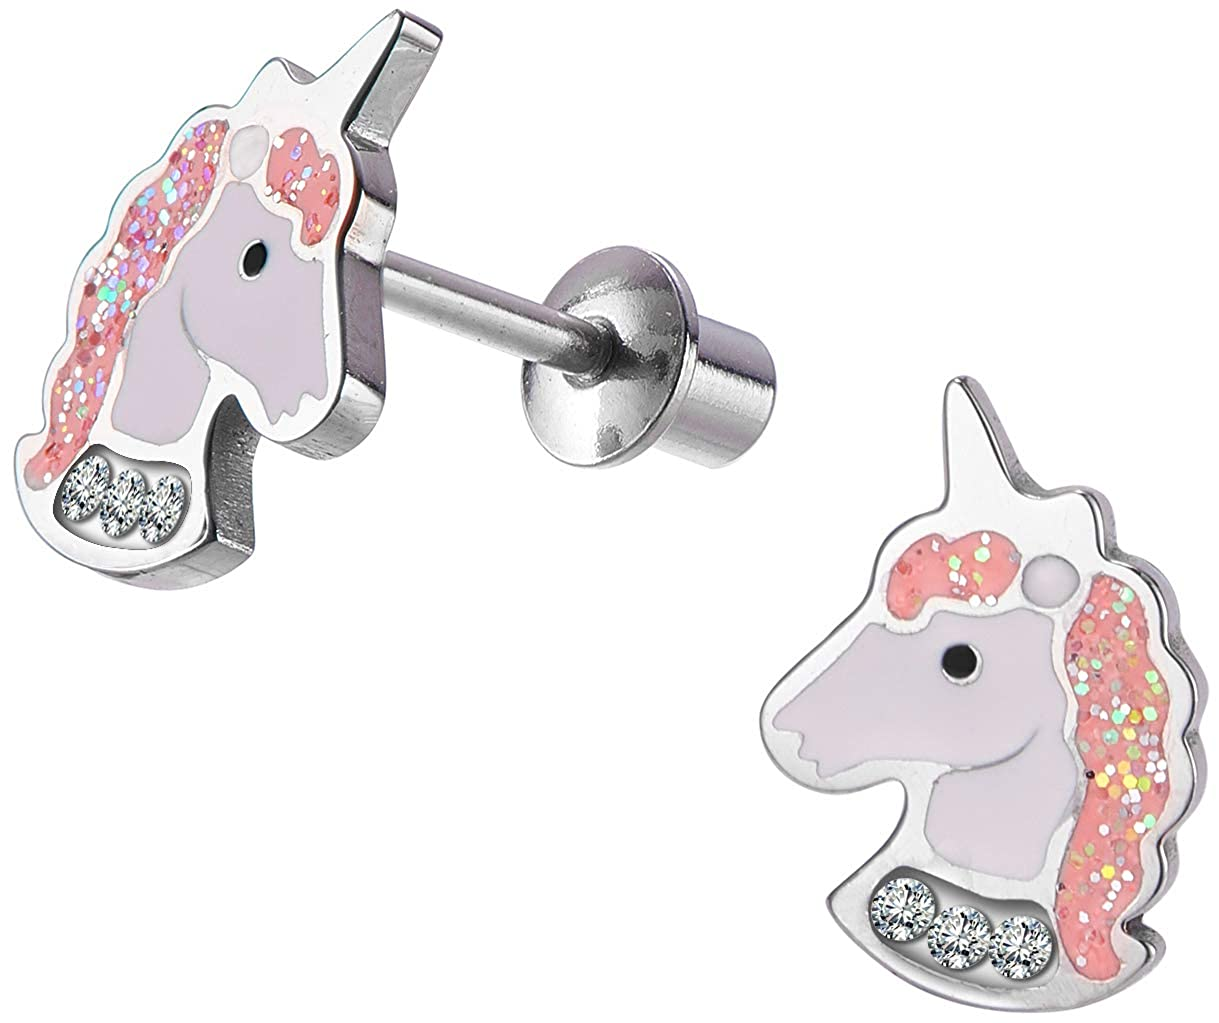 Unicorn Stud Earrings Pink Purple with Secure Screwback for Kids, Toddlers, Little Girls, Baby Girls, Stainless Steel Ultra Sensitive Screw Back Post Earrings Pink Purple Screw Back Earrings for Little Girls with Stainless Steel Post (Purple) #1144